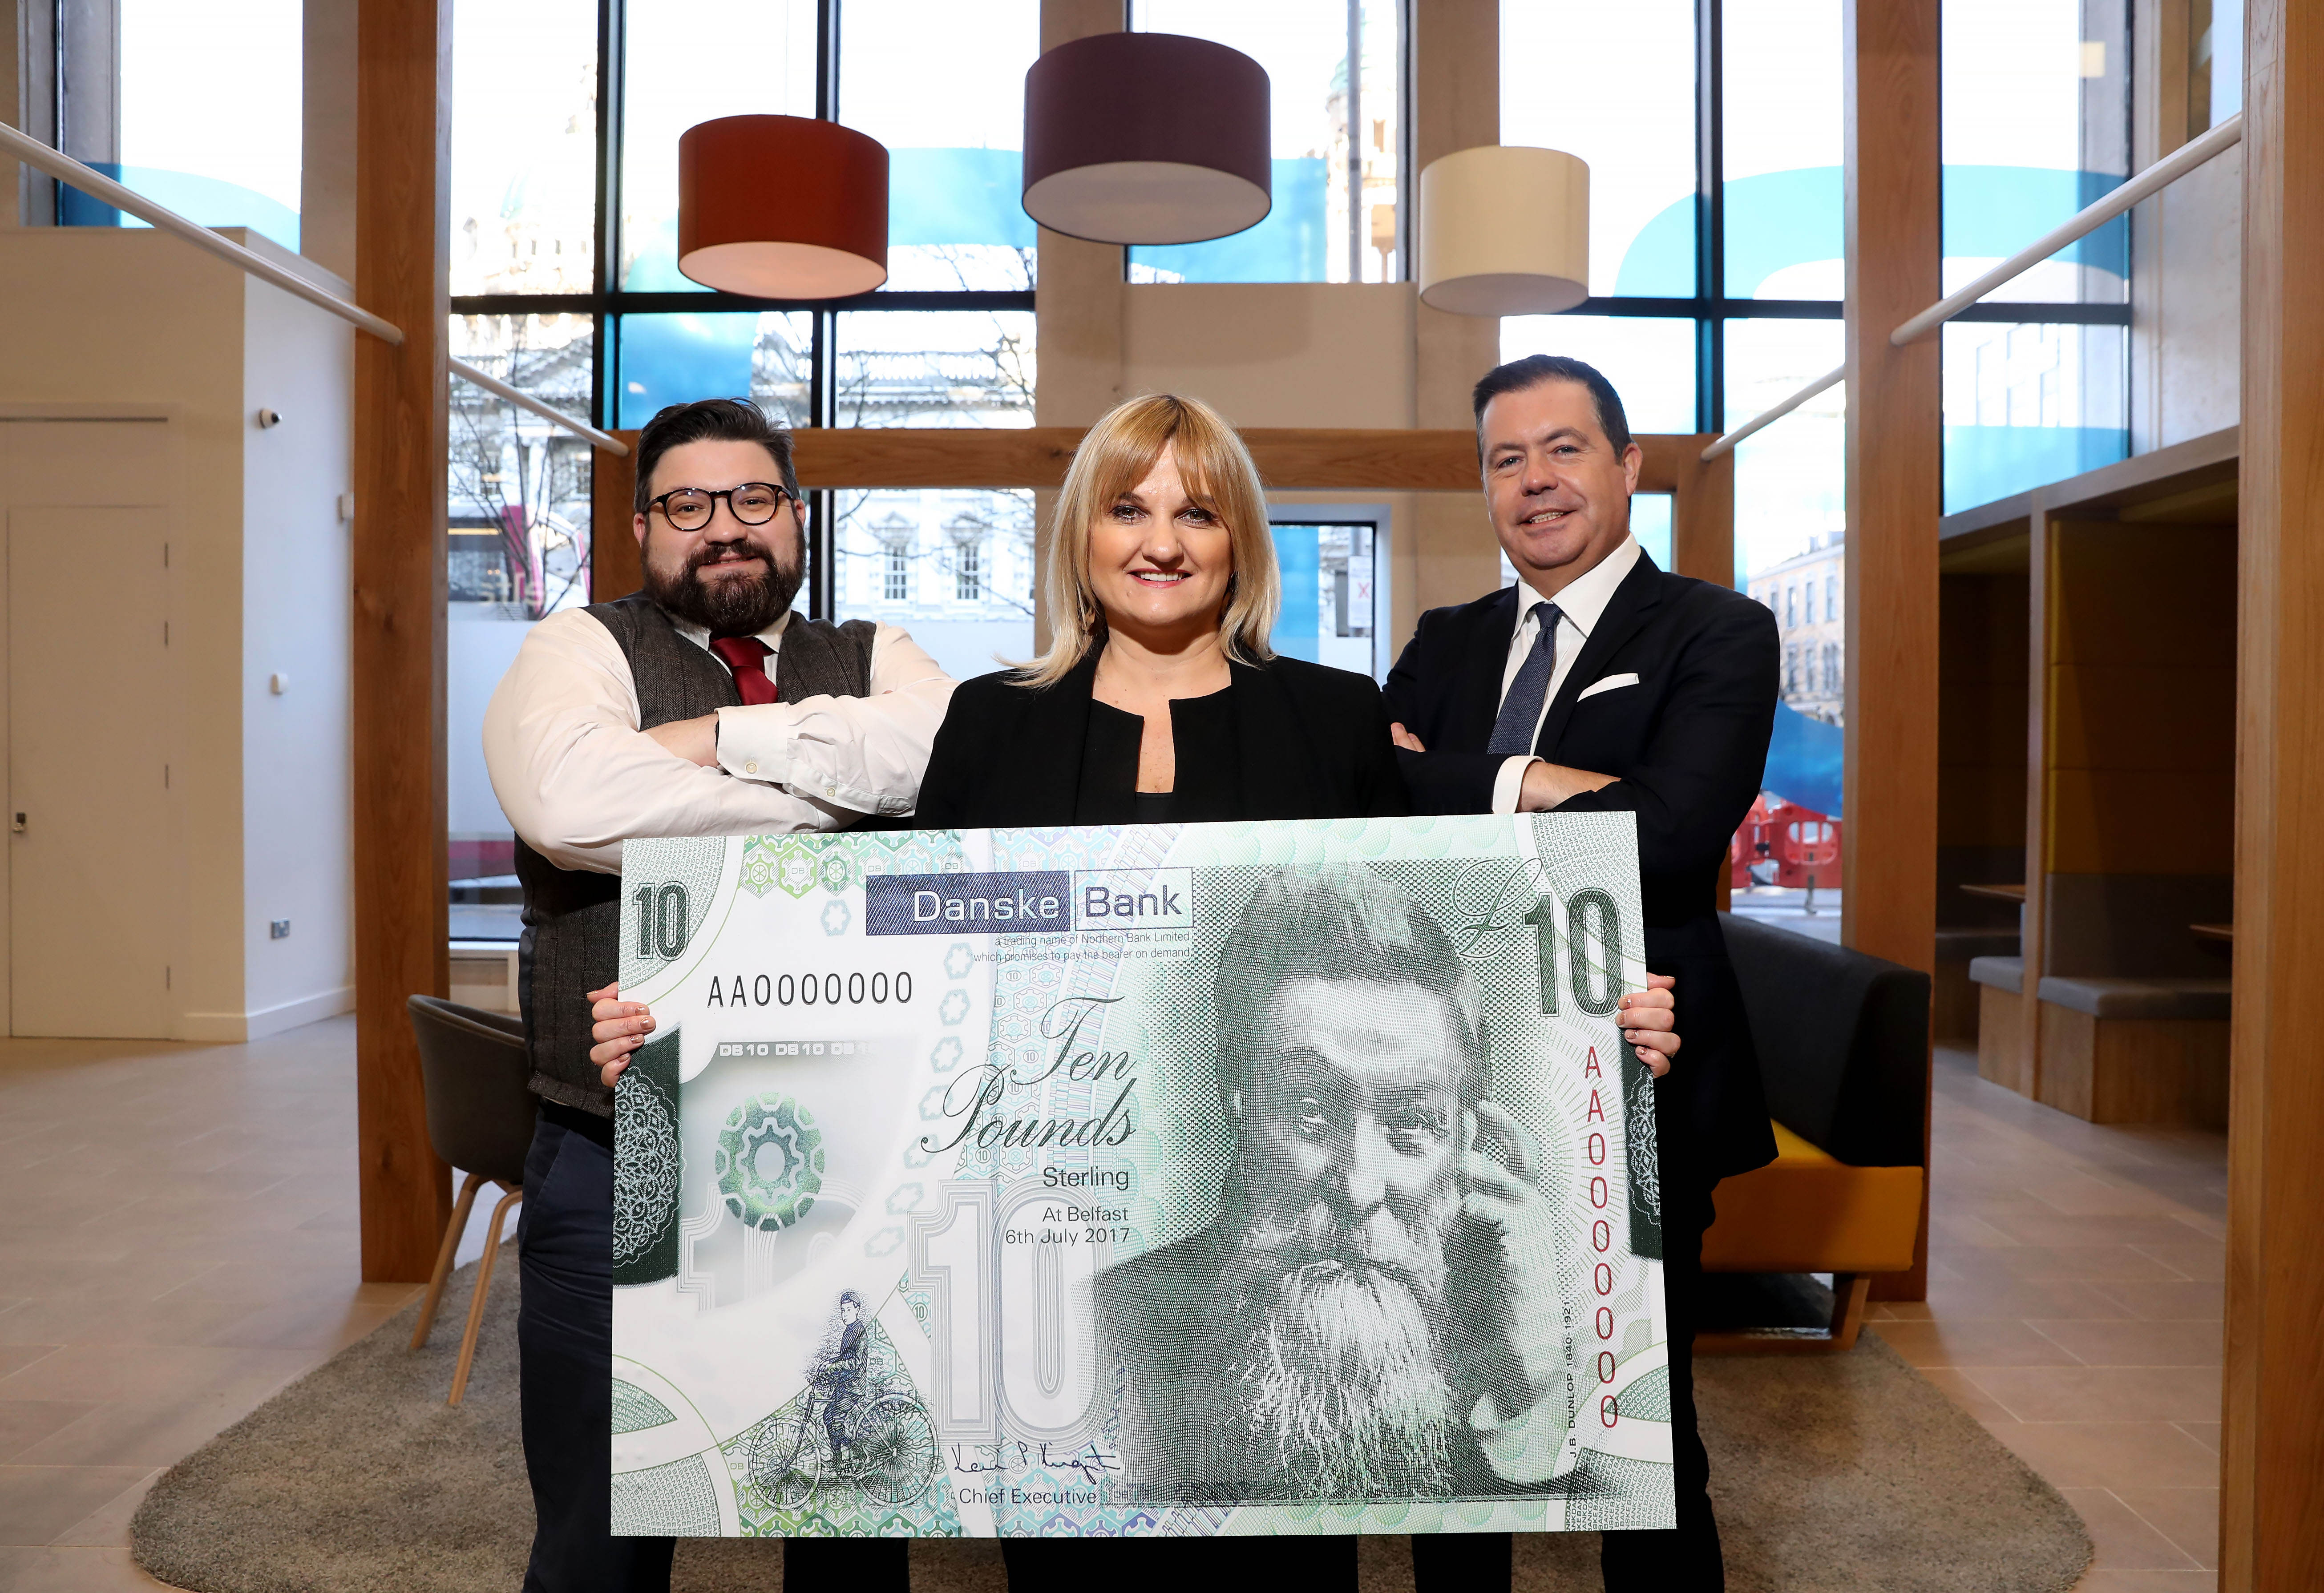 A woman stands between two men holding a large, green Danske Bank £10 note. The two men have their arms folded.